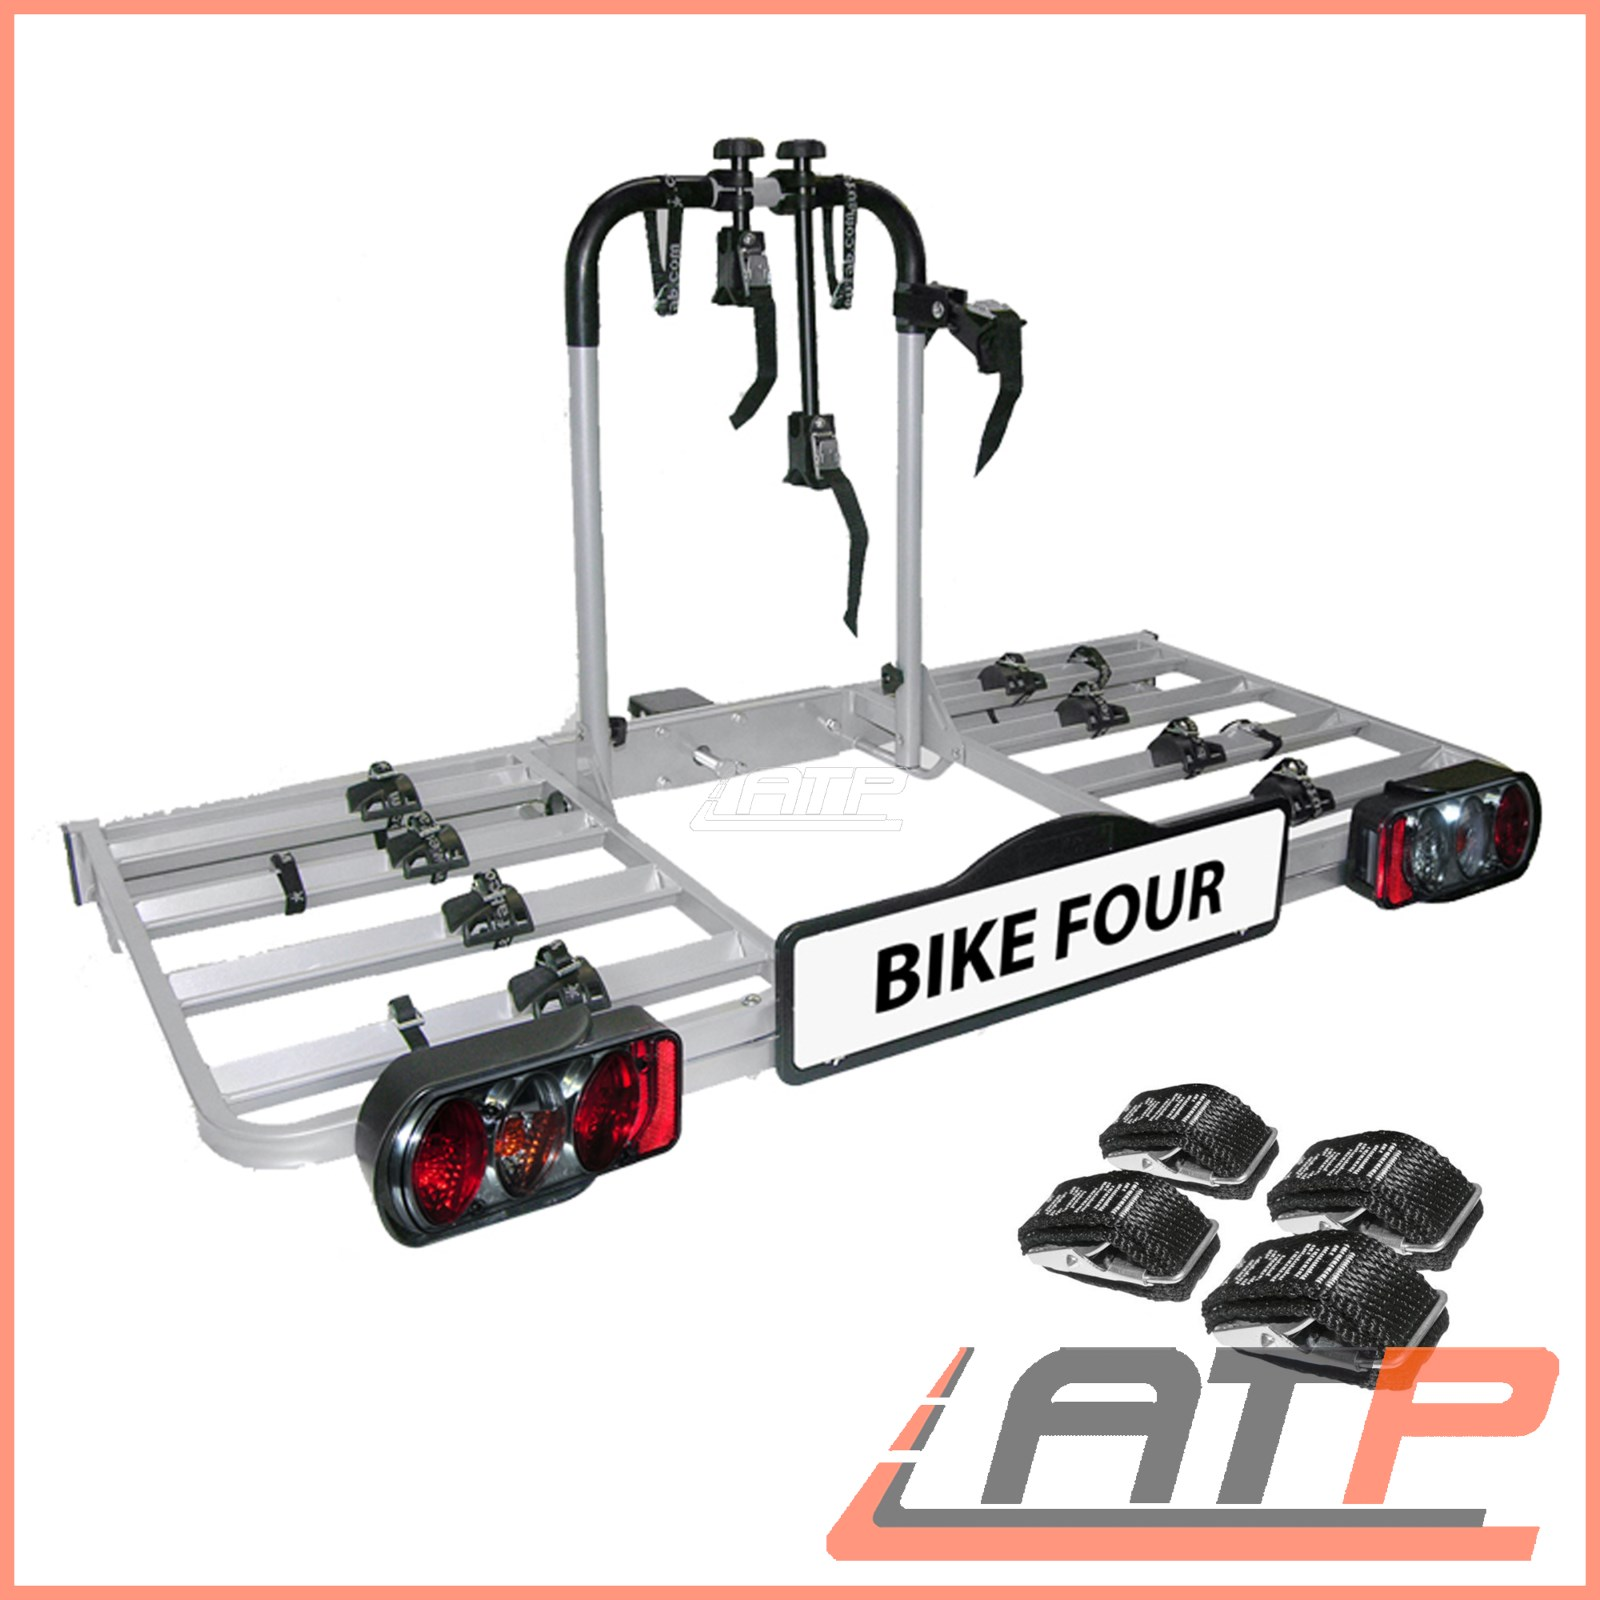 Eufab 11514 Tow Bar Carrier Luke for 4 Bicycles